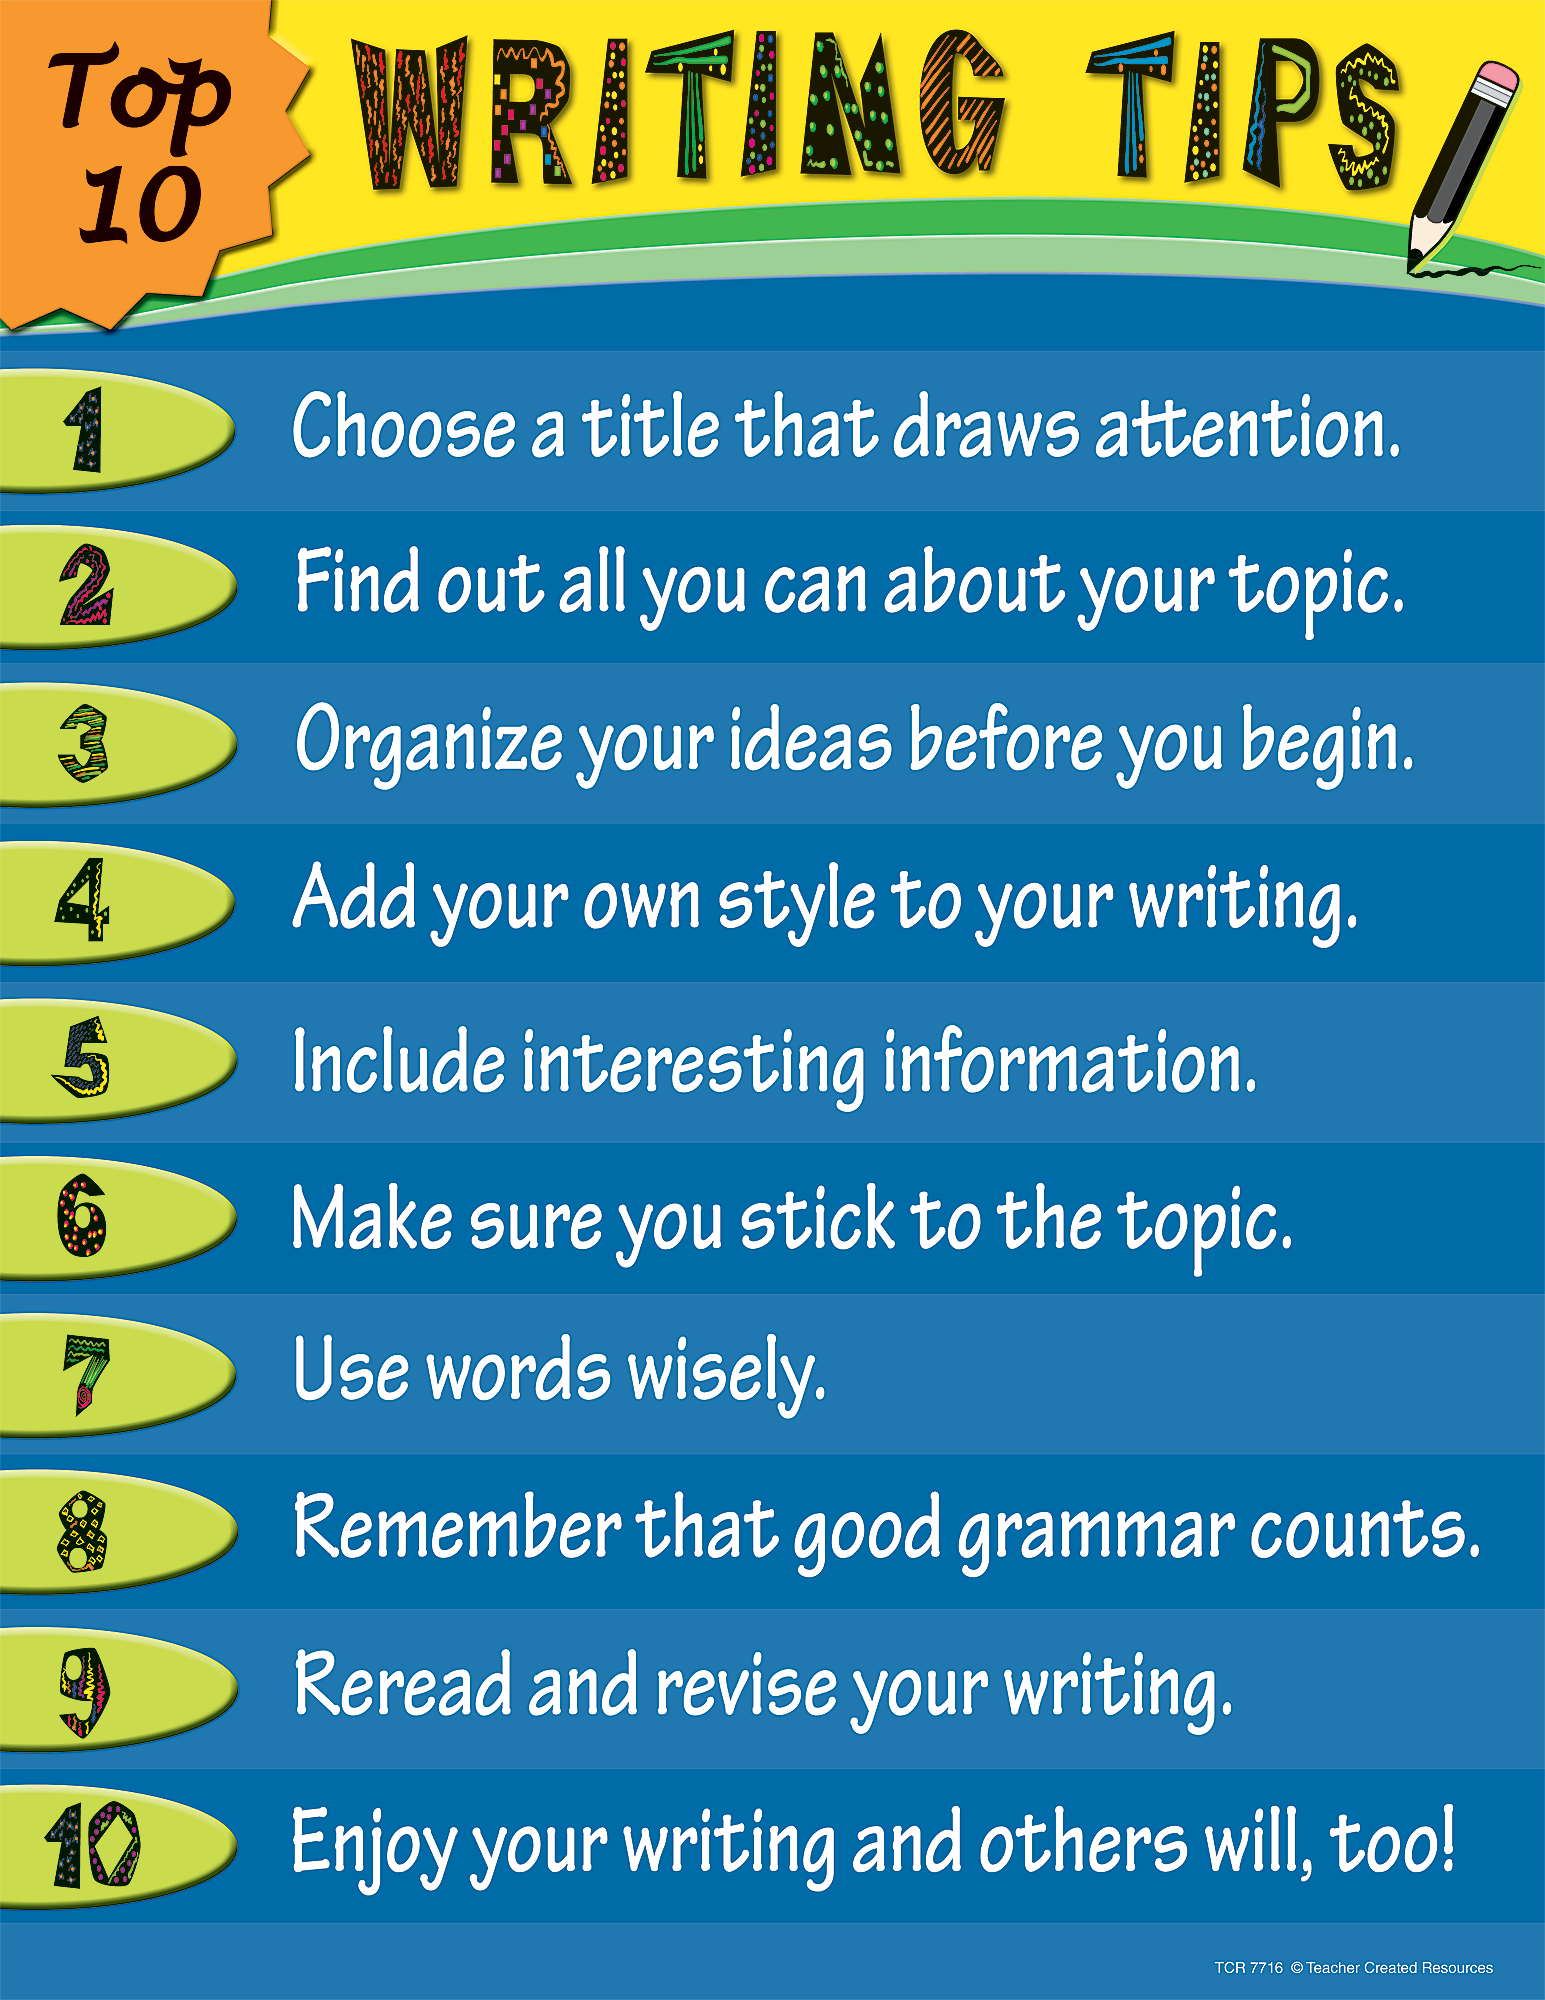 Top 10 Writing Tips Chart - TCR7716